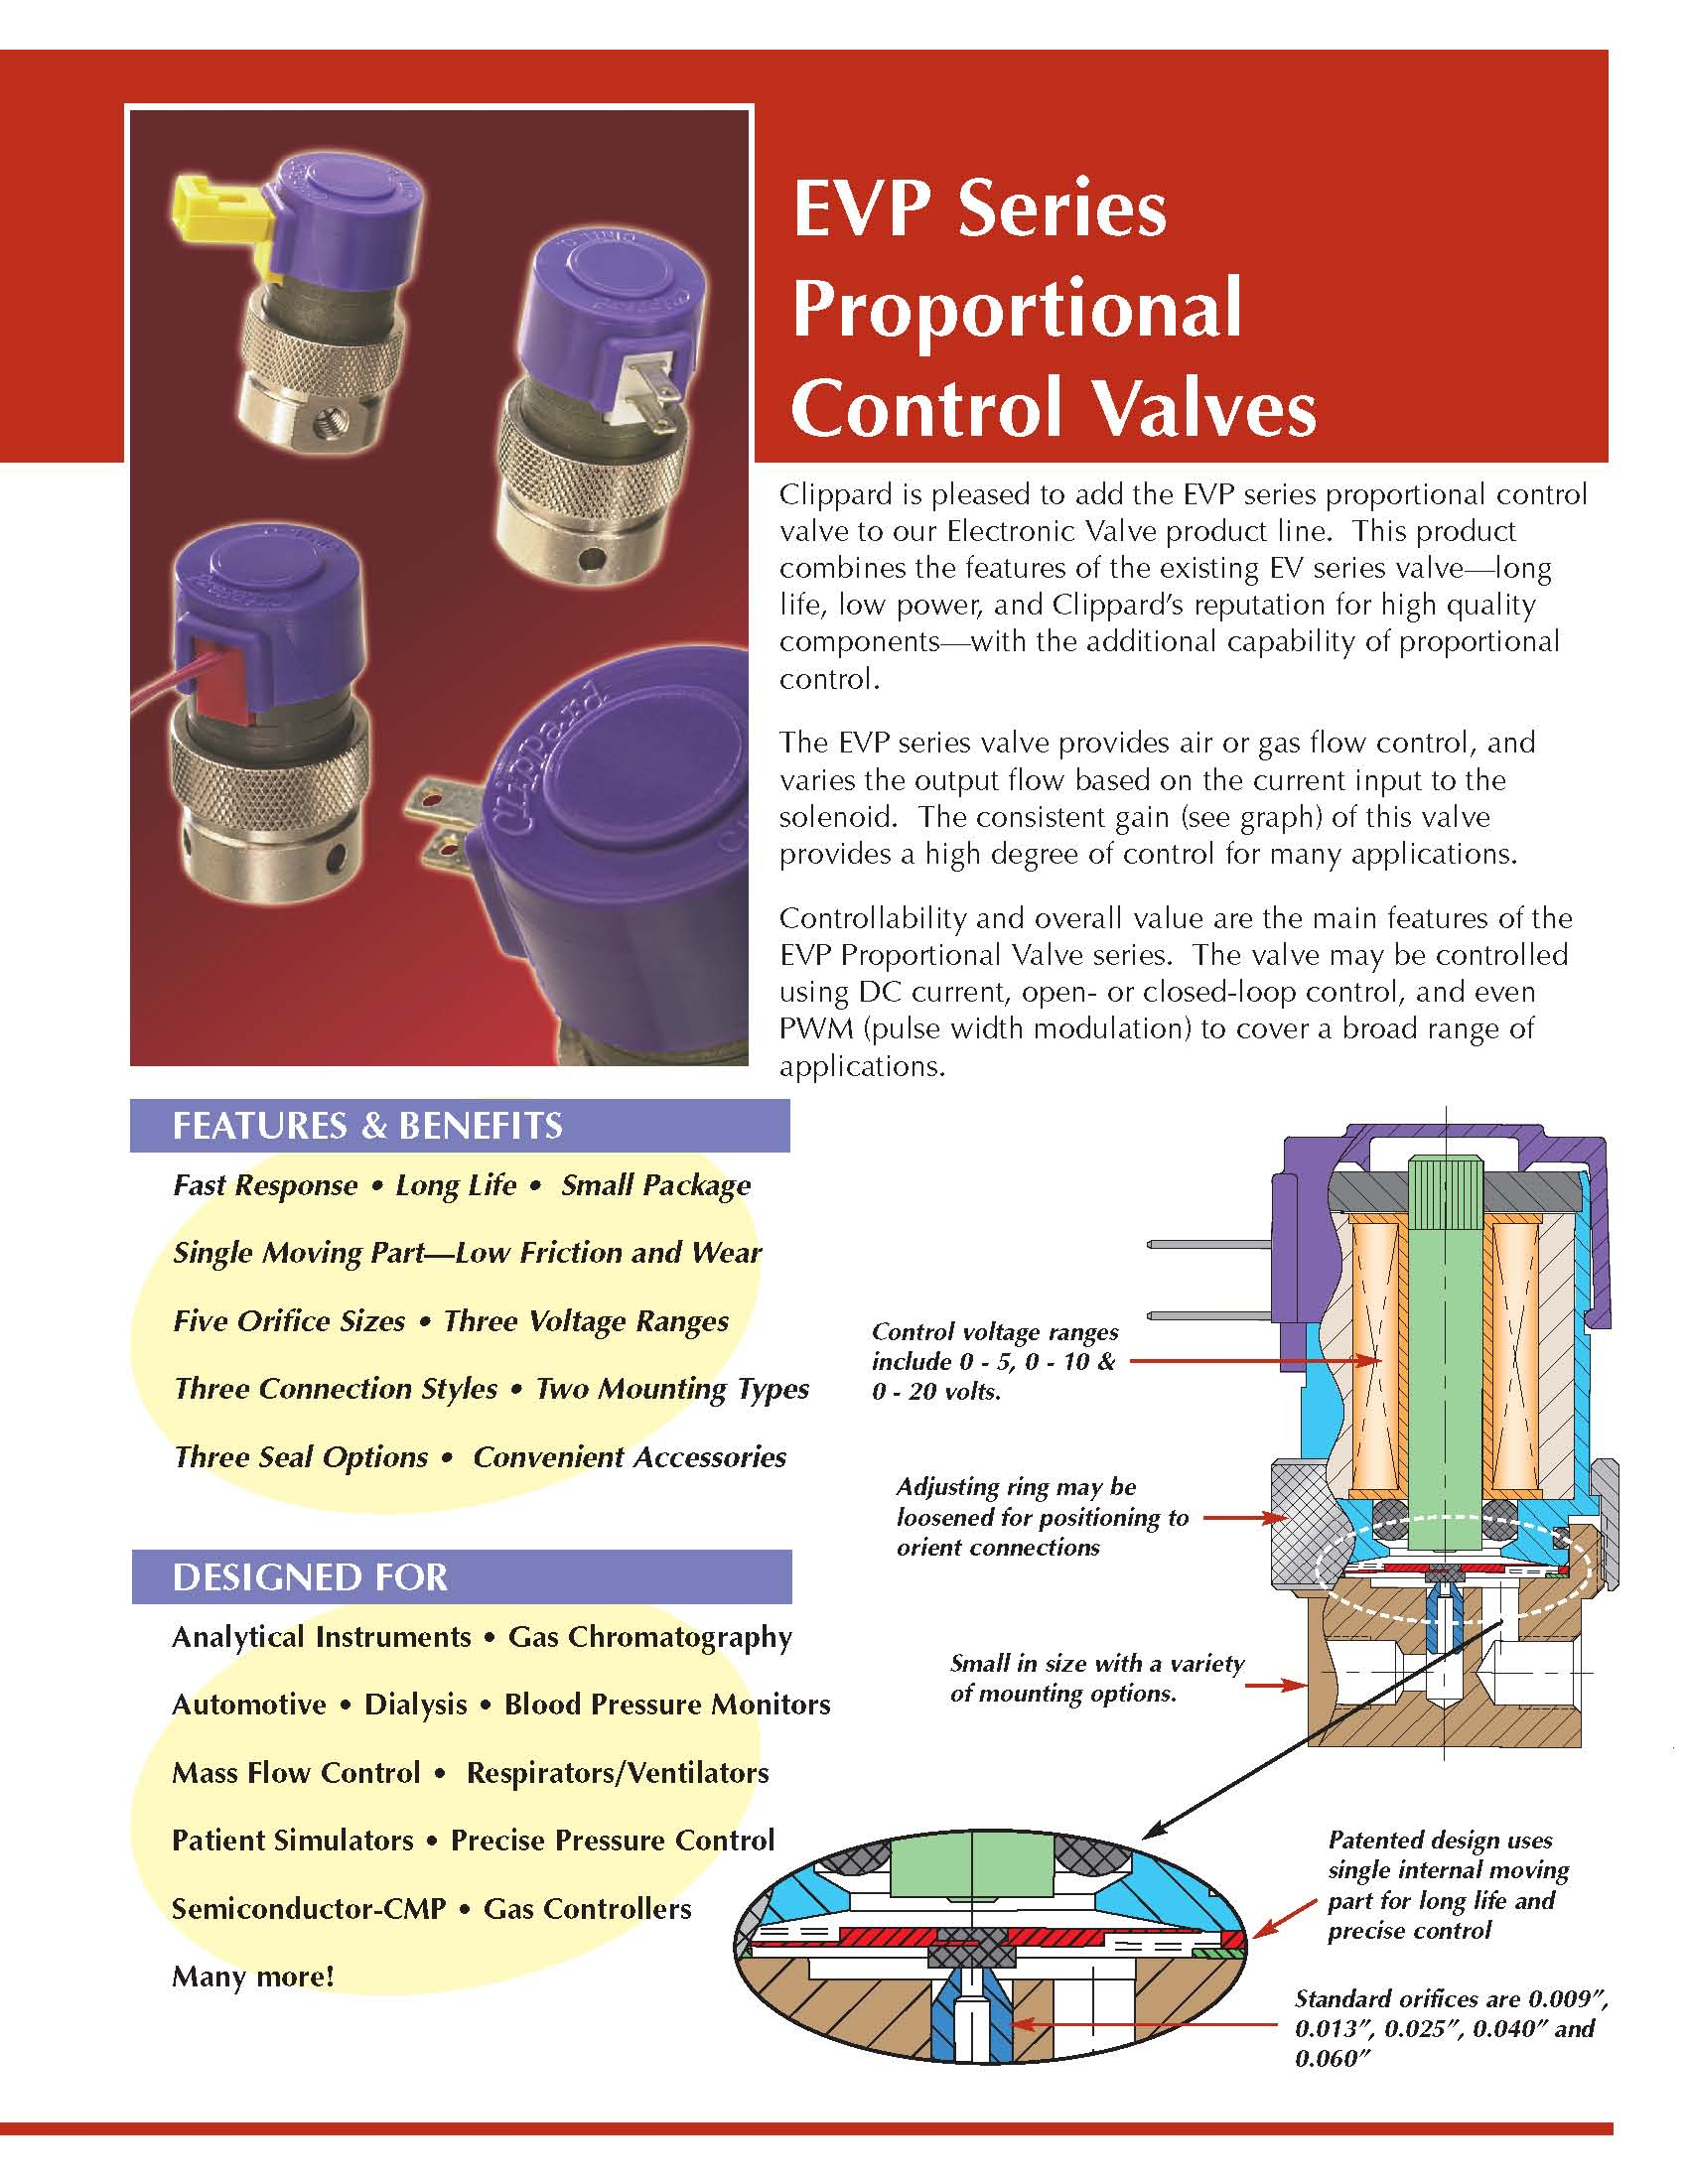 Clippard EVP Series Proportional Valves Data Sheet